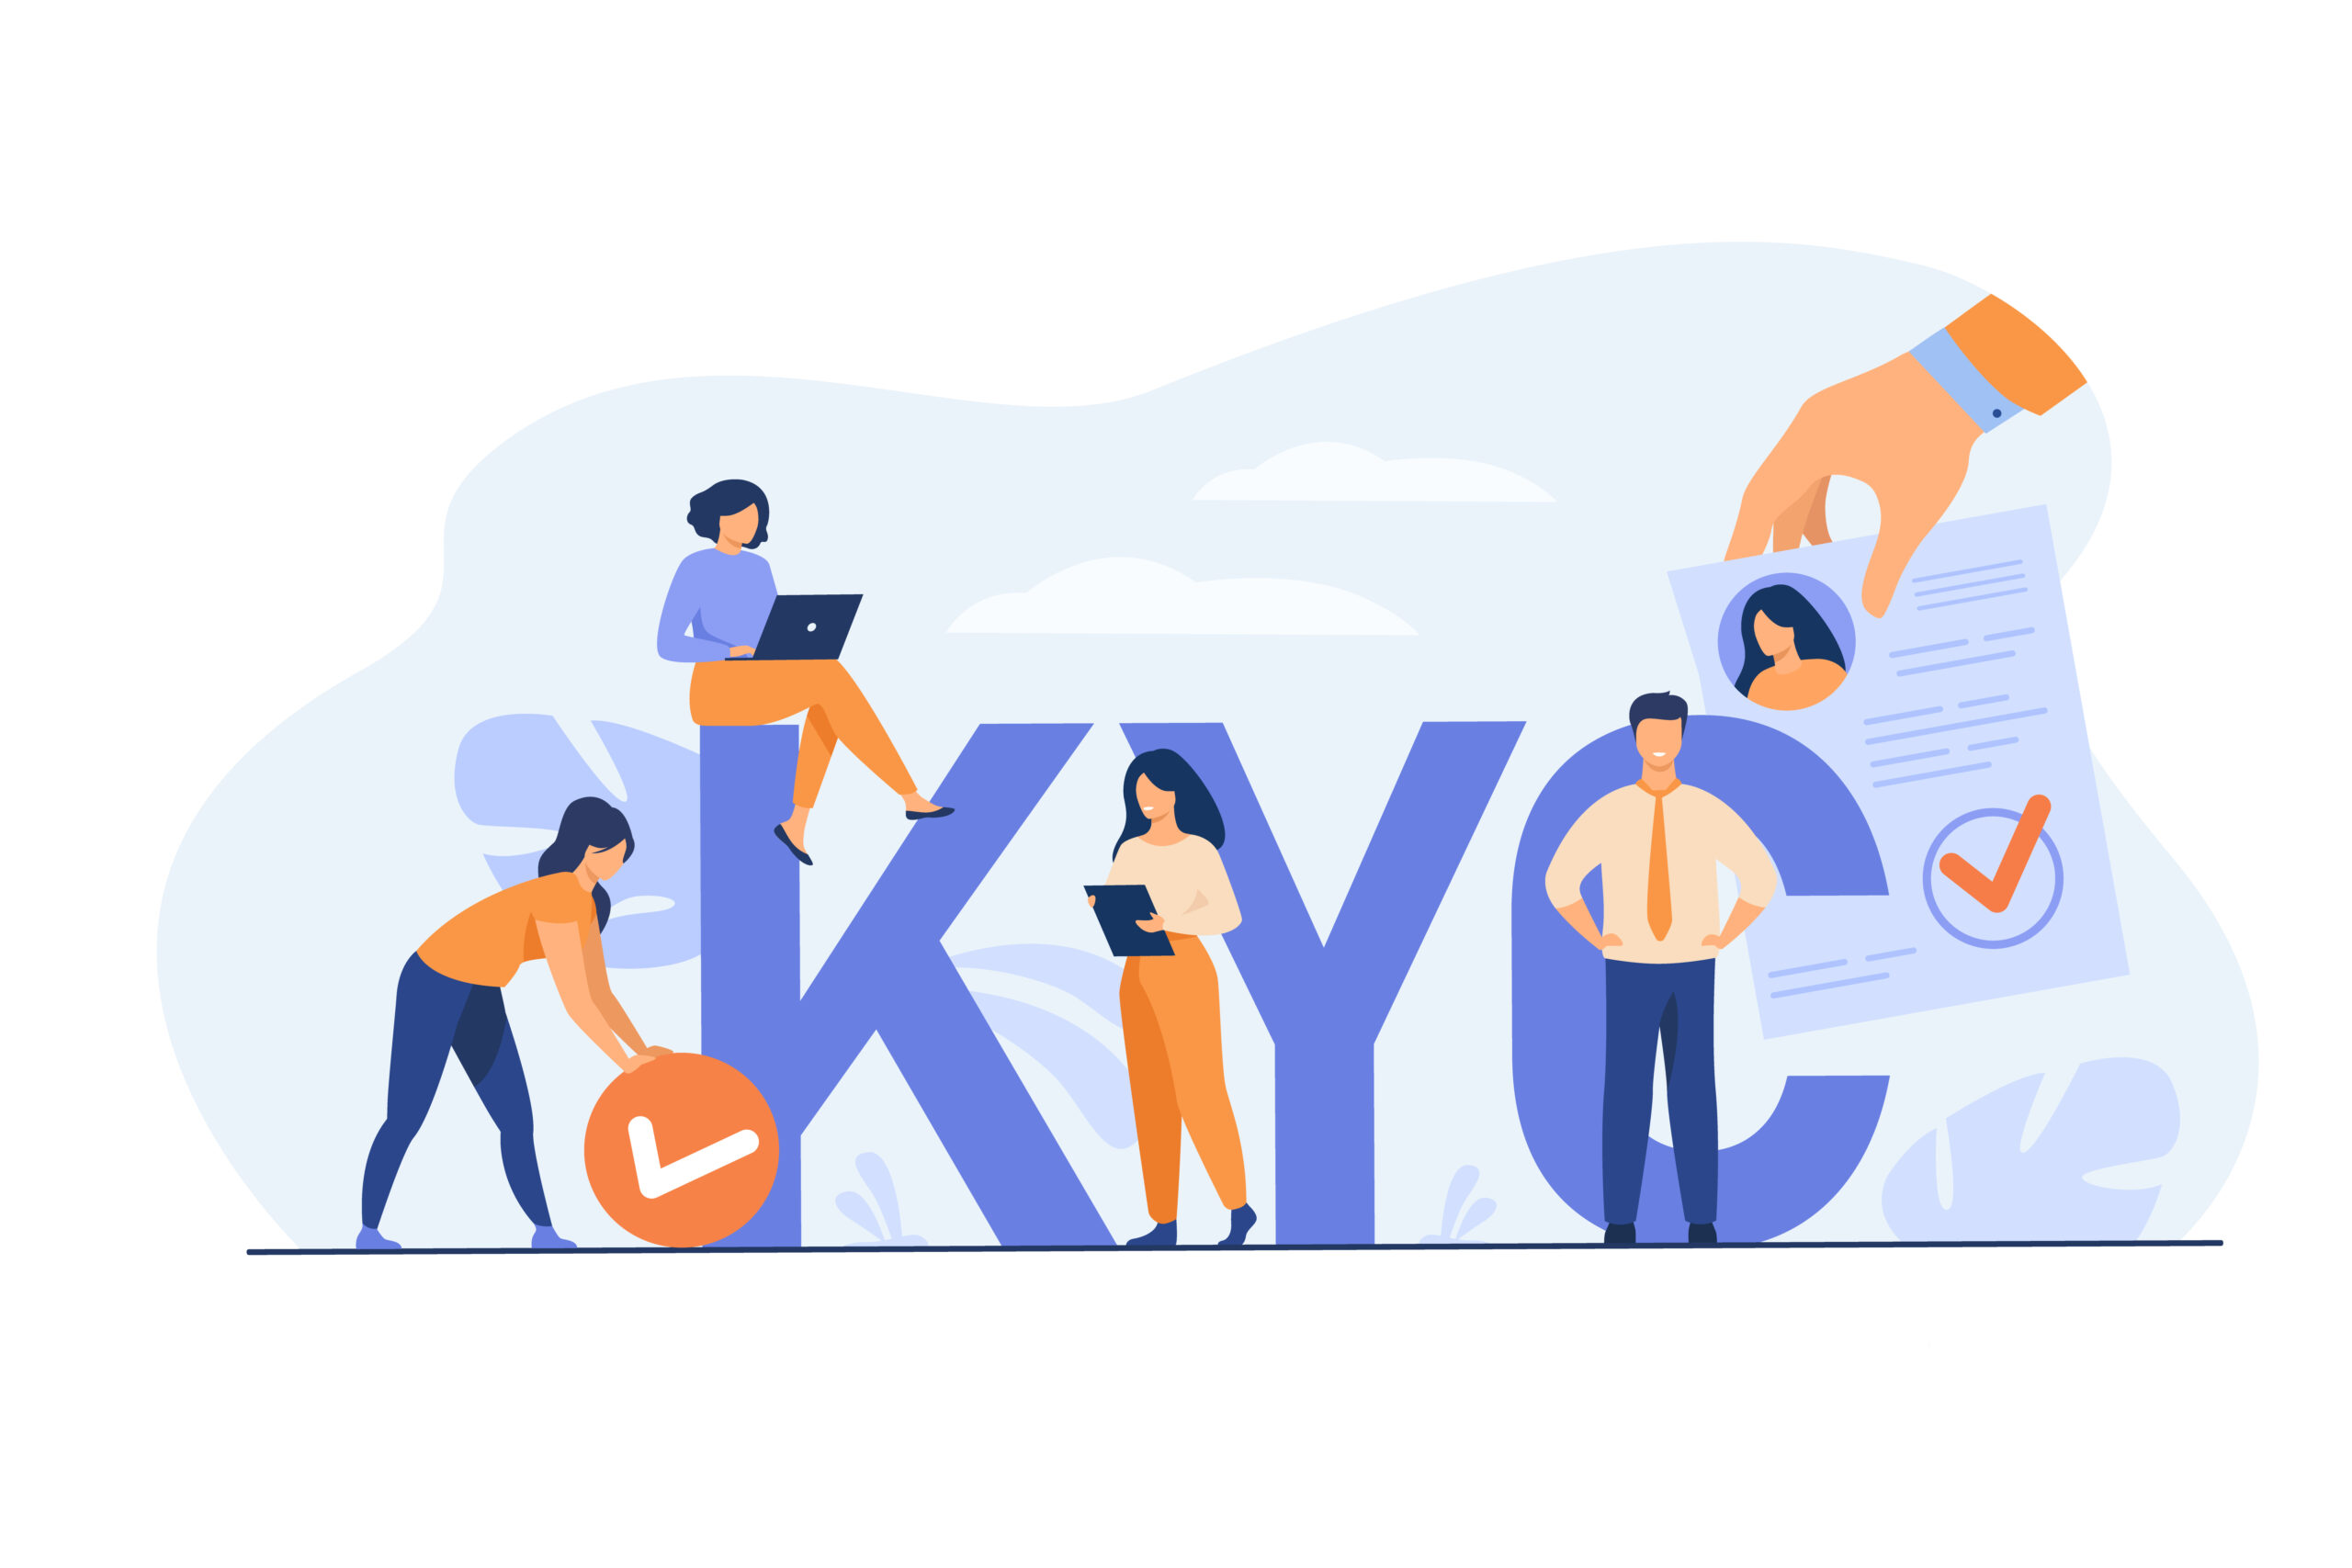 The need for shared KYC and onboarding automation tools in an exhausted European financial market